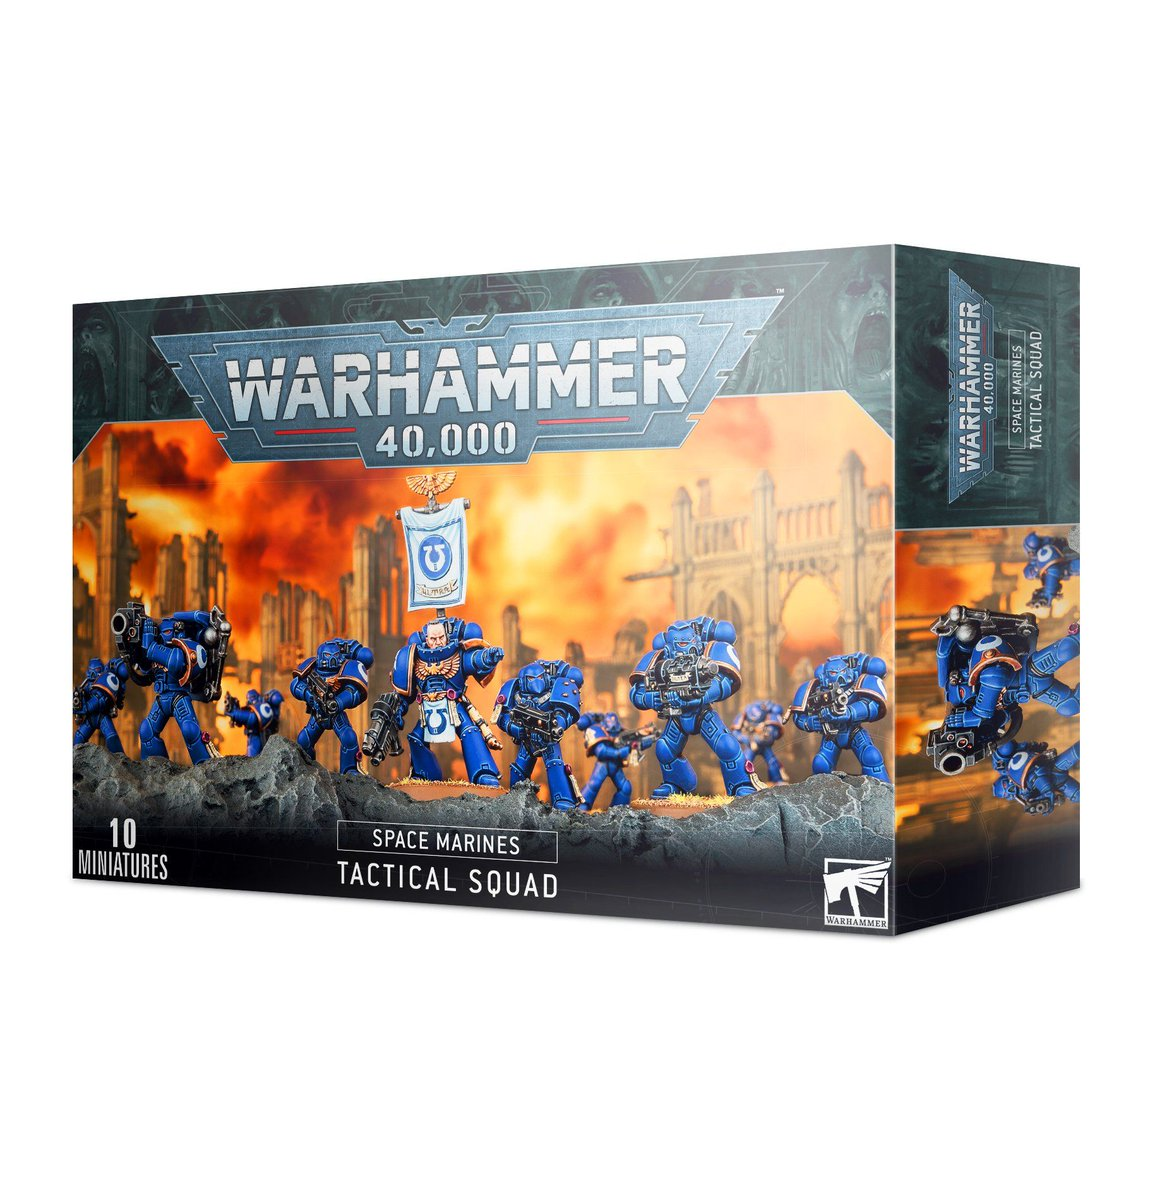 Does the new #40k keyword shake you to the Core or build your Core beliefs? Discuss ... https://t.co/OZSb5zIZtQ #GDTG #grimdicetabletopgaming #FLGS #wargaming #miniatures #tabletopgames #hobby #miniature #wargames #geek #nerd  #tabletop #miniwargaming #tabletopgaming #wargamer https://t.co/XR7t9O7ZKx